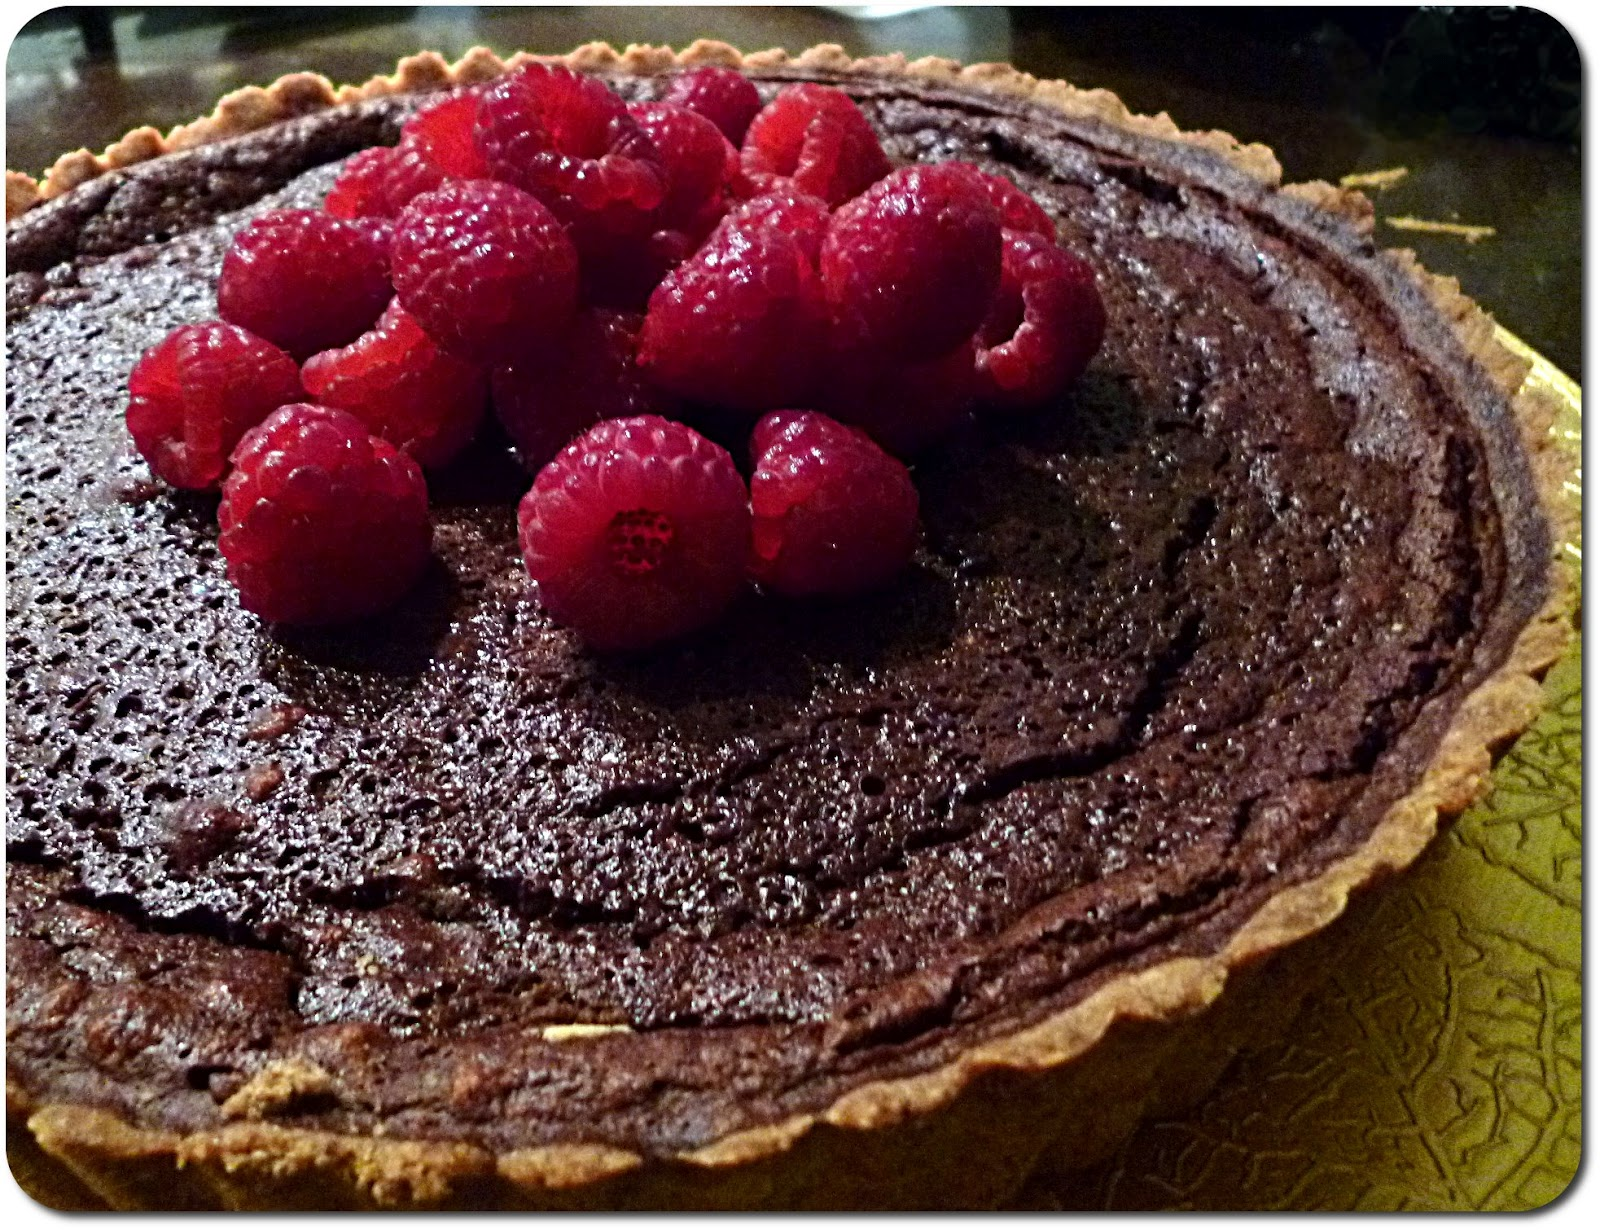 MiNa's Food Adventures: Chocolate & Raspberry Tart Recipe